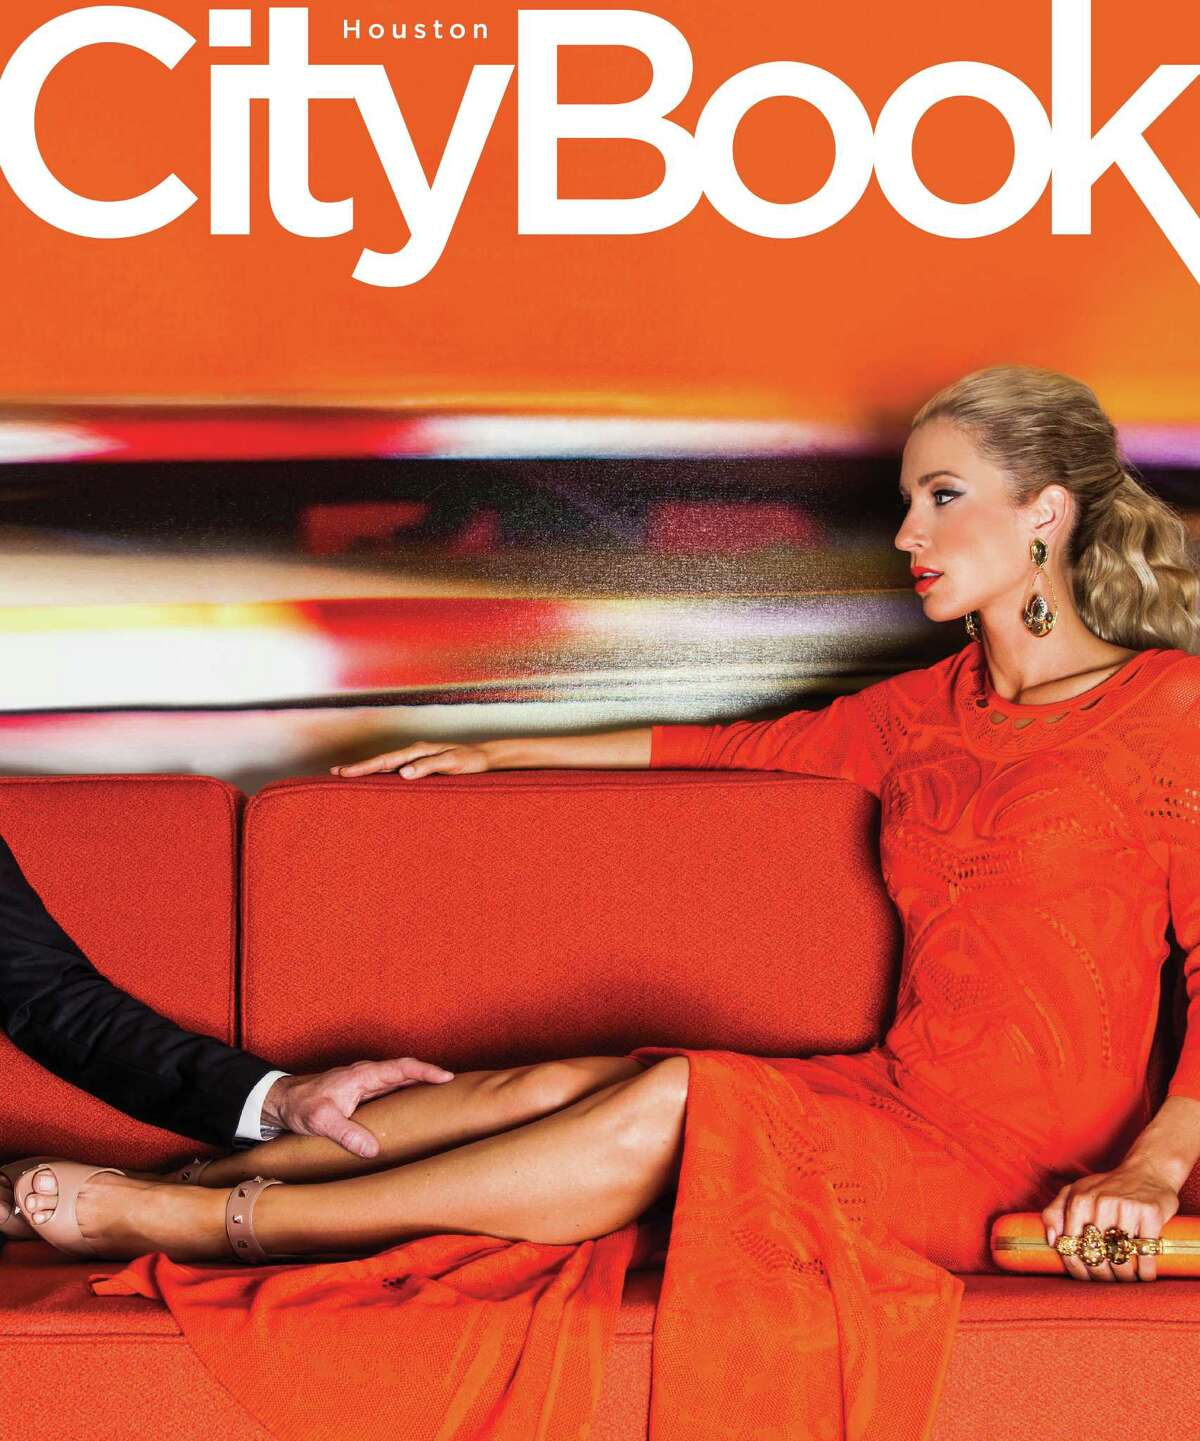 Mock renderings of covers of Houston CityBook, a new Houston magazine being launched by Jeff Gremillion, former editor of Houston magazine. It will debut in September 2016.